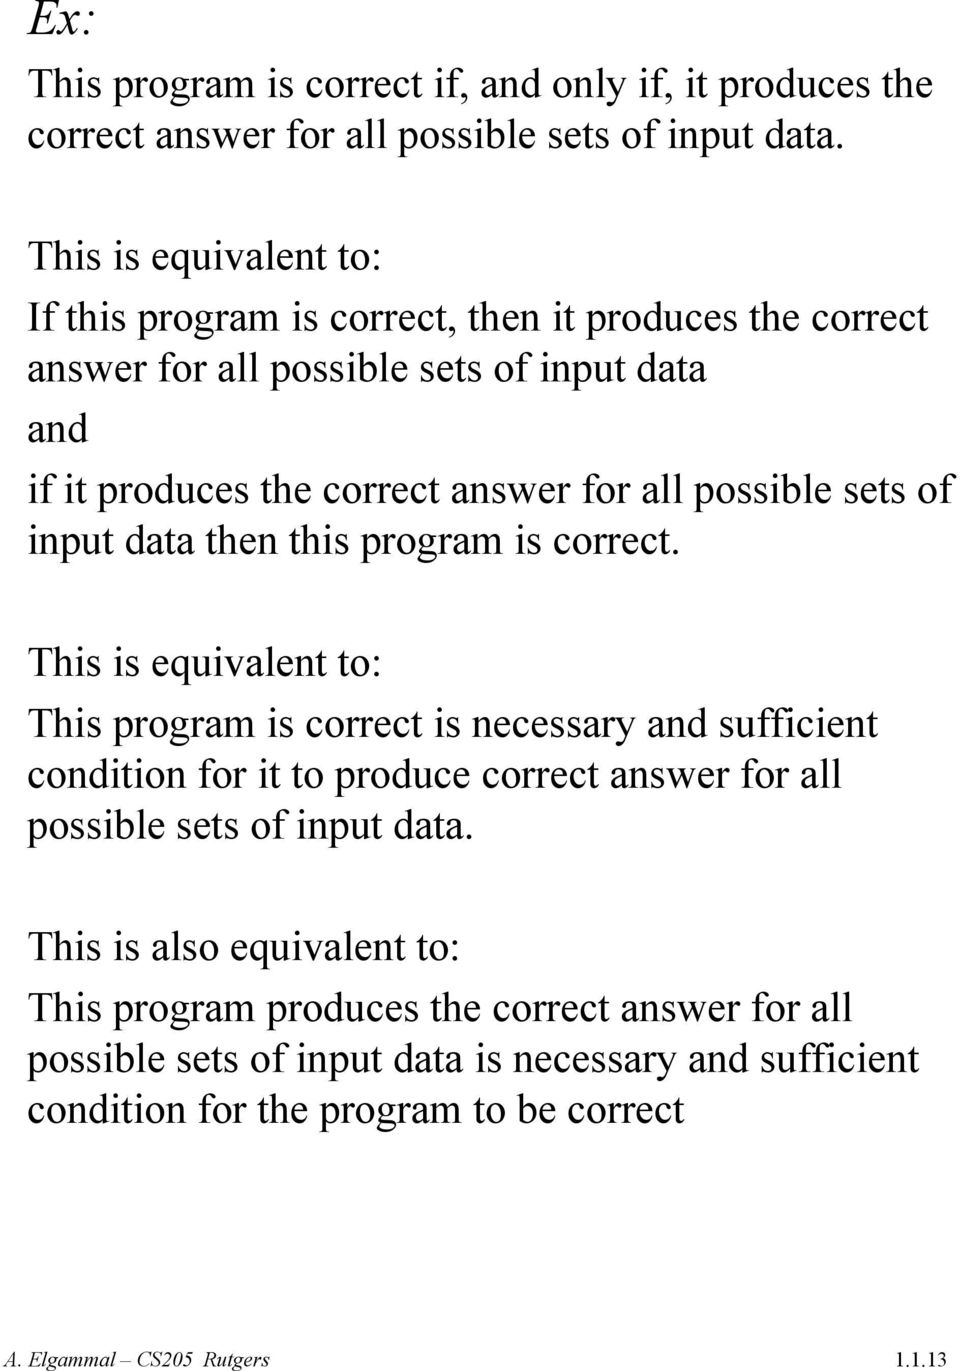 possible sets of input data then this program is correct.